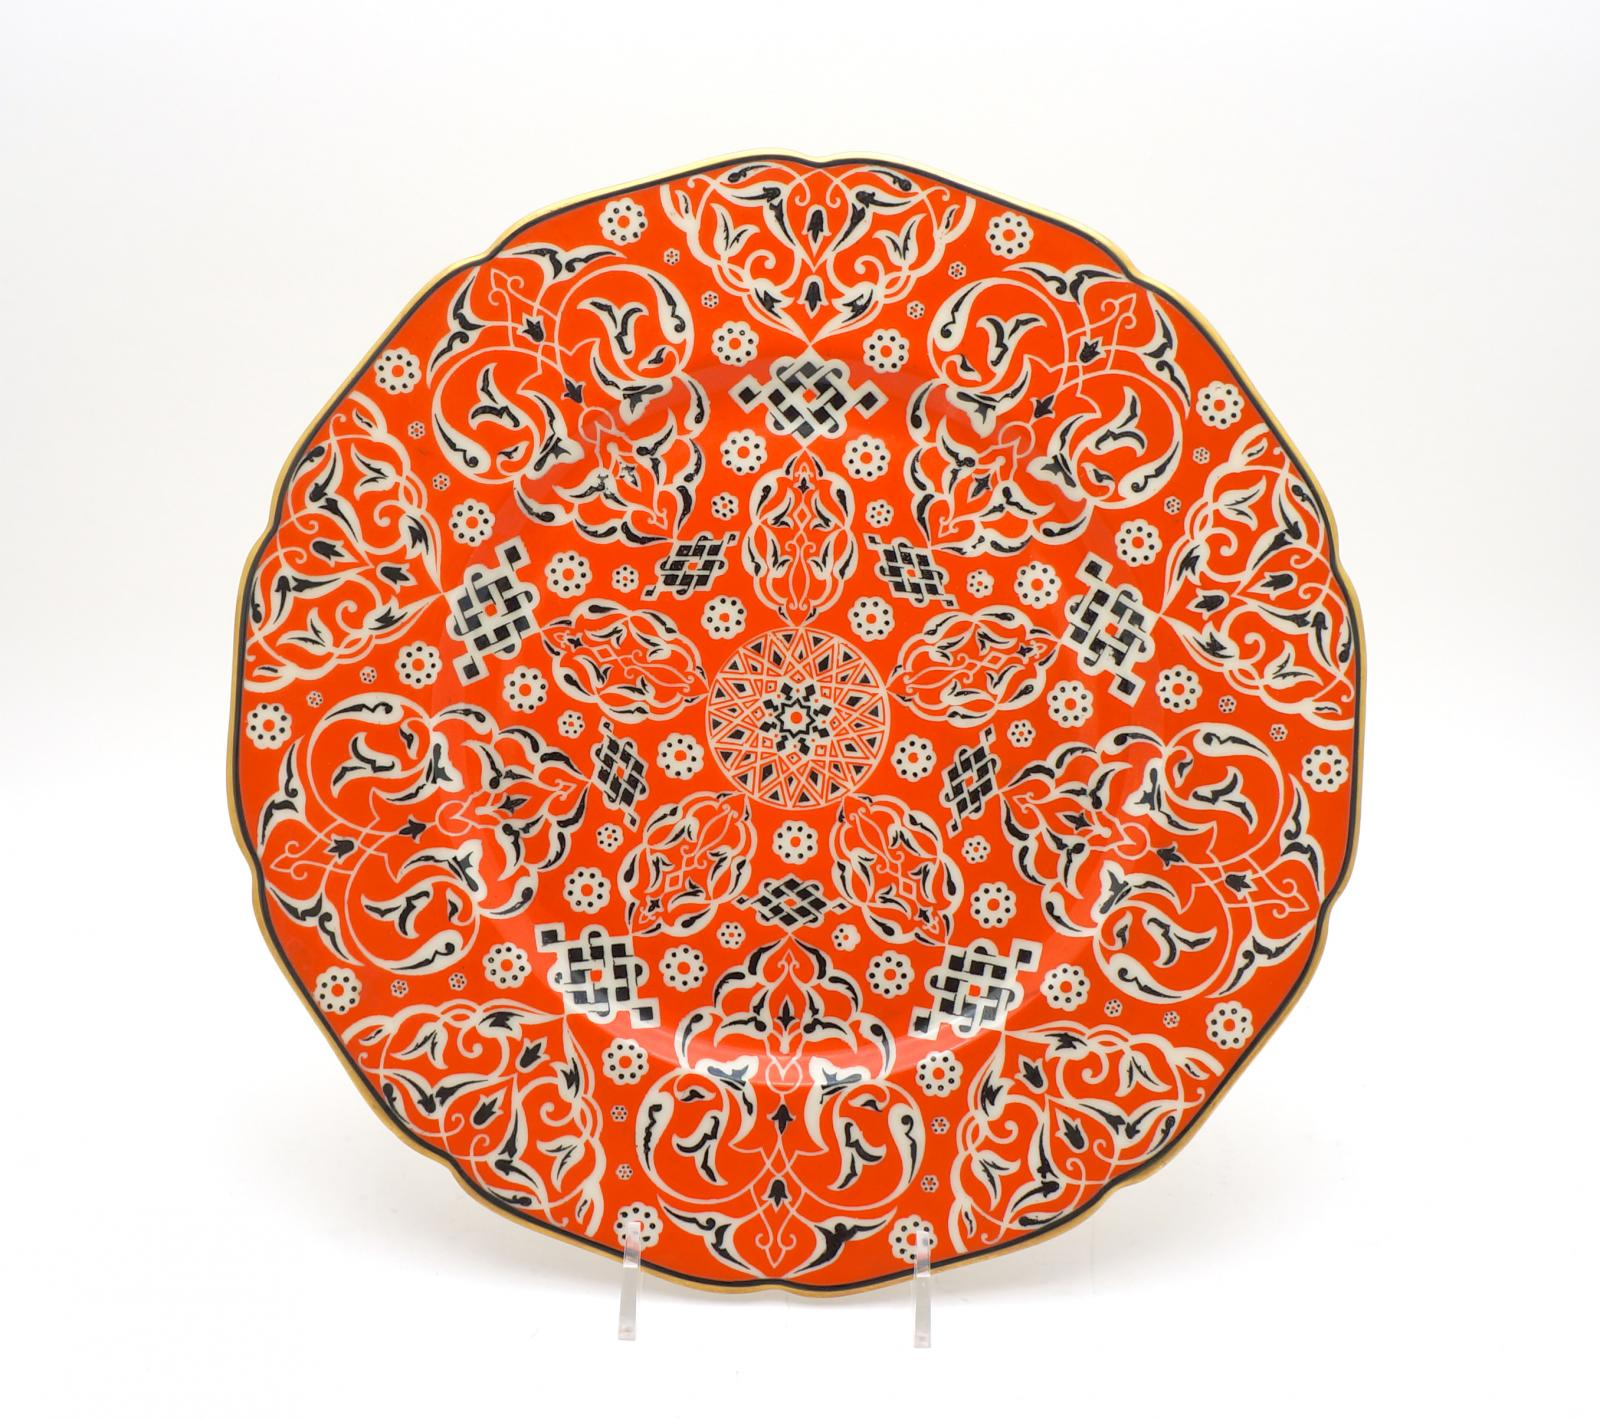 unusual arts  crafts shaped rim orange dinner plates  dinner  - hover to zoomview fullscreen